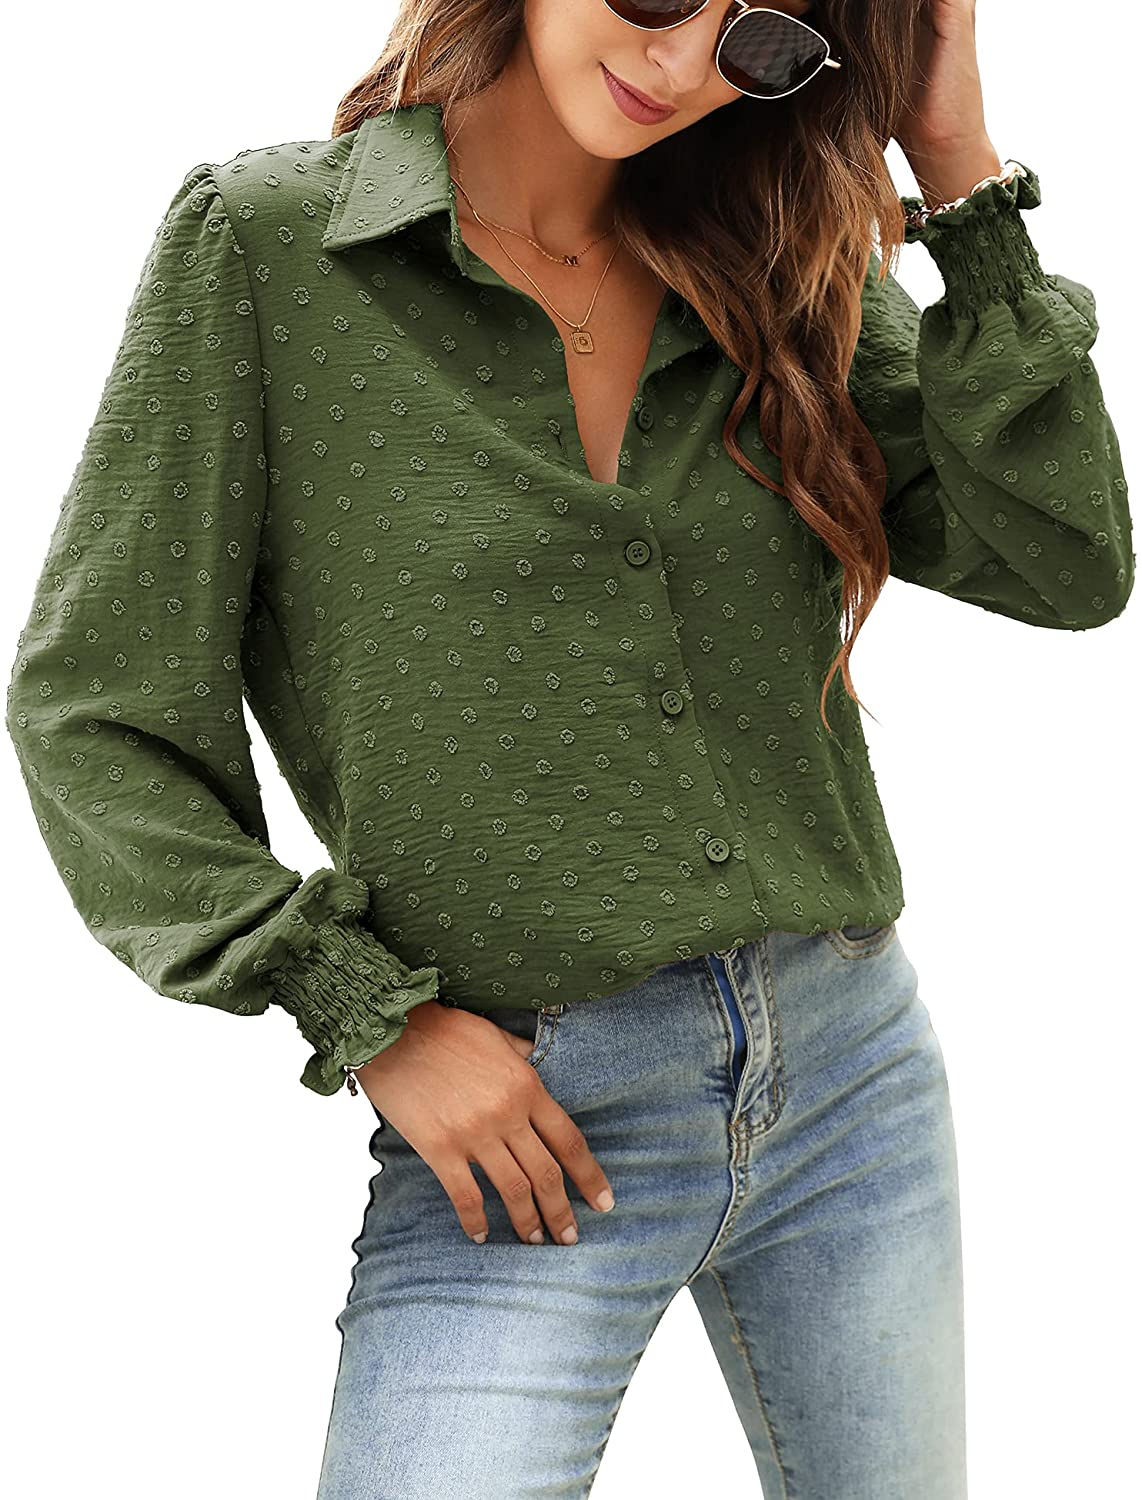 Womens Casual Chiffon Blouses Puff Long Sleeve Tops Swiss Dot Button Down Shirts with Smocked Cuffs